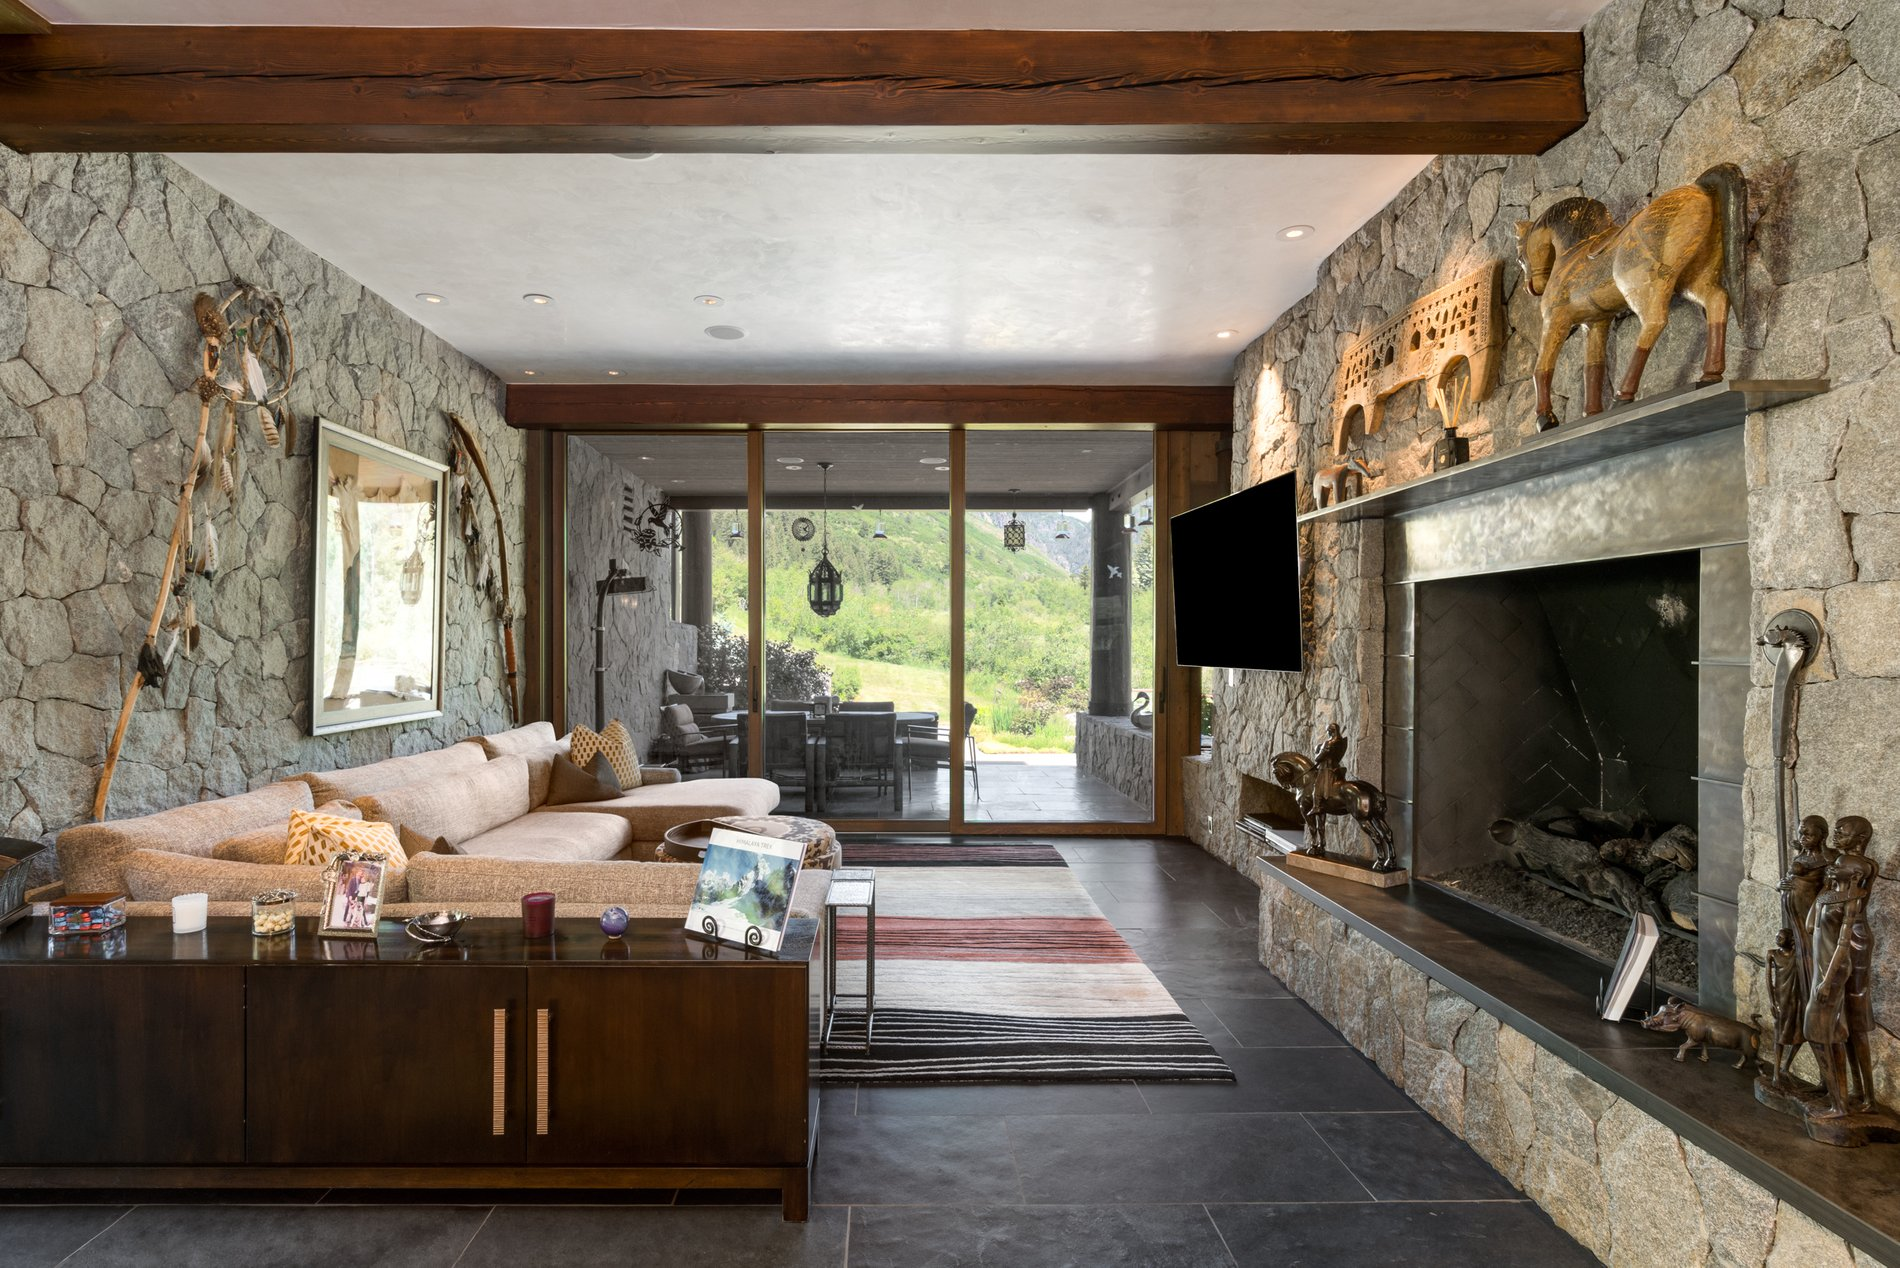 Huge wood burning fireplace with a real stone wall and raised hearth stone.